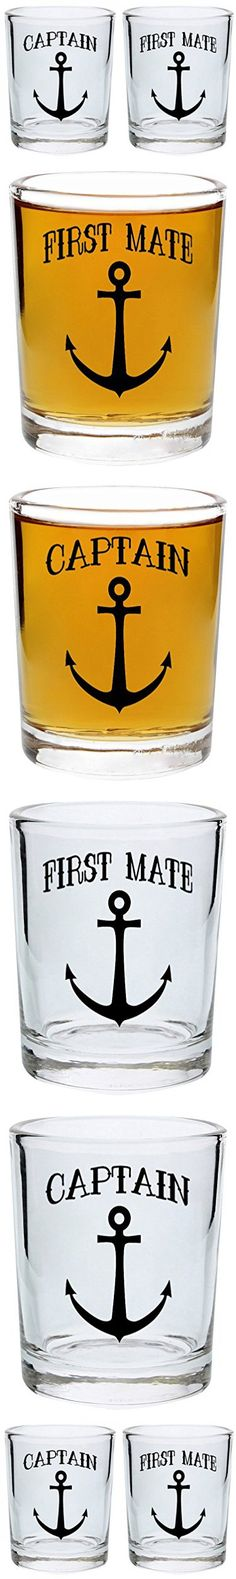 Bridal Shower Gifts Couples Shot Glasses Captain and First Mate Nautical Anchor Funny Wedding Gift for Newlyweds Couples Gift Shot Glasses 2-Pack Round Shot Glass Set Black